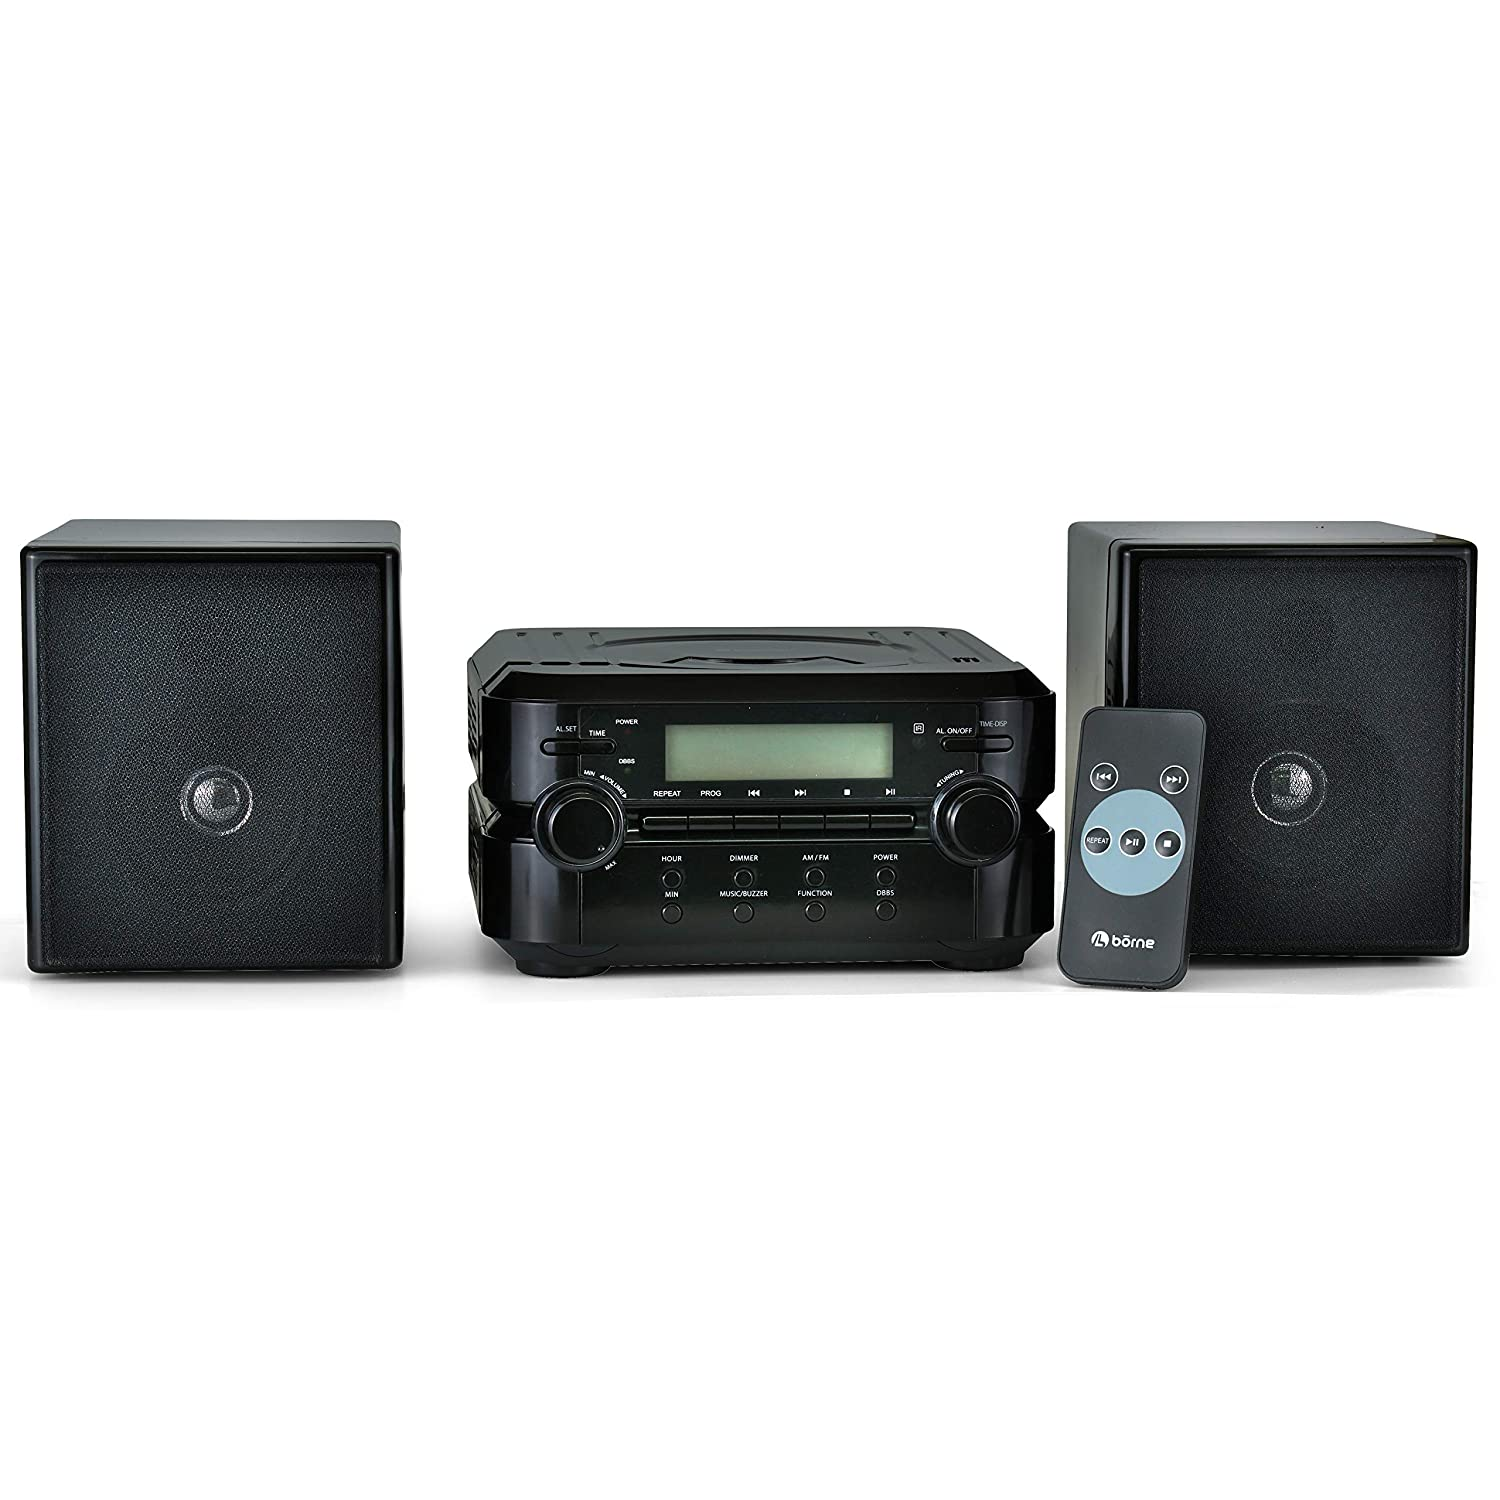 Borne Compact CD Player Stereo Home Music System Remote AM/FM Tuner Bluetooth Compatible